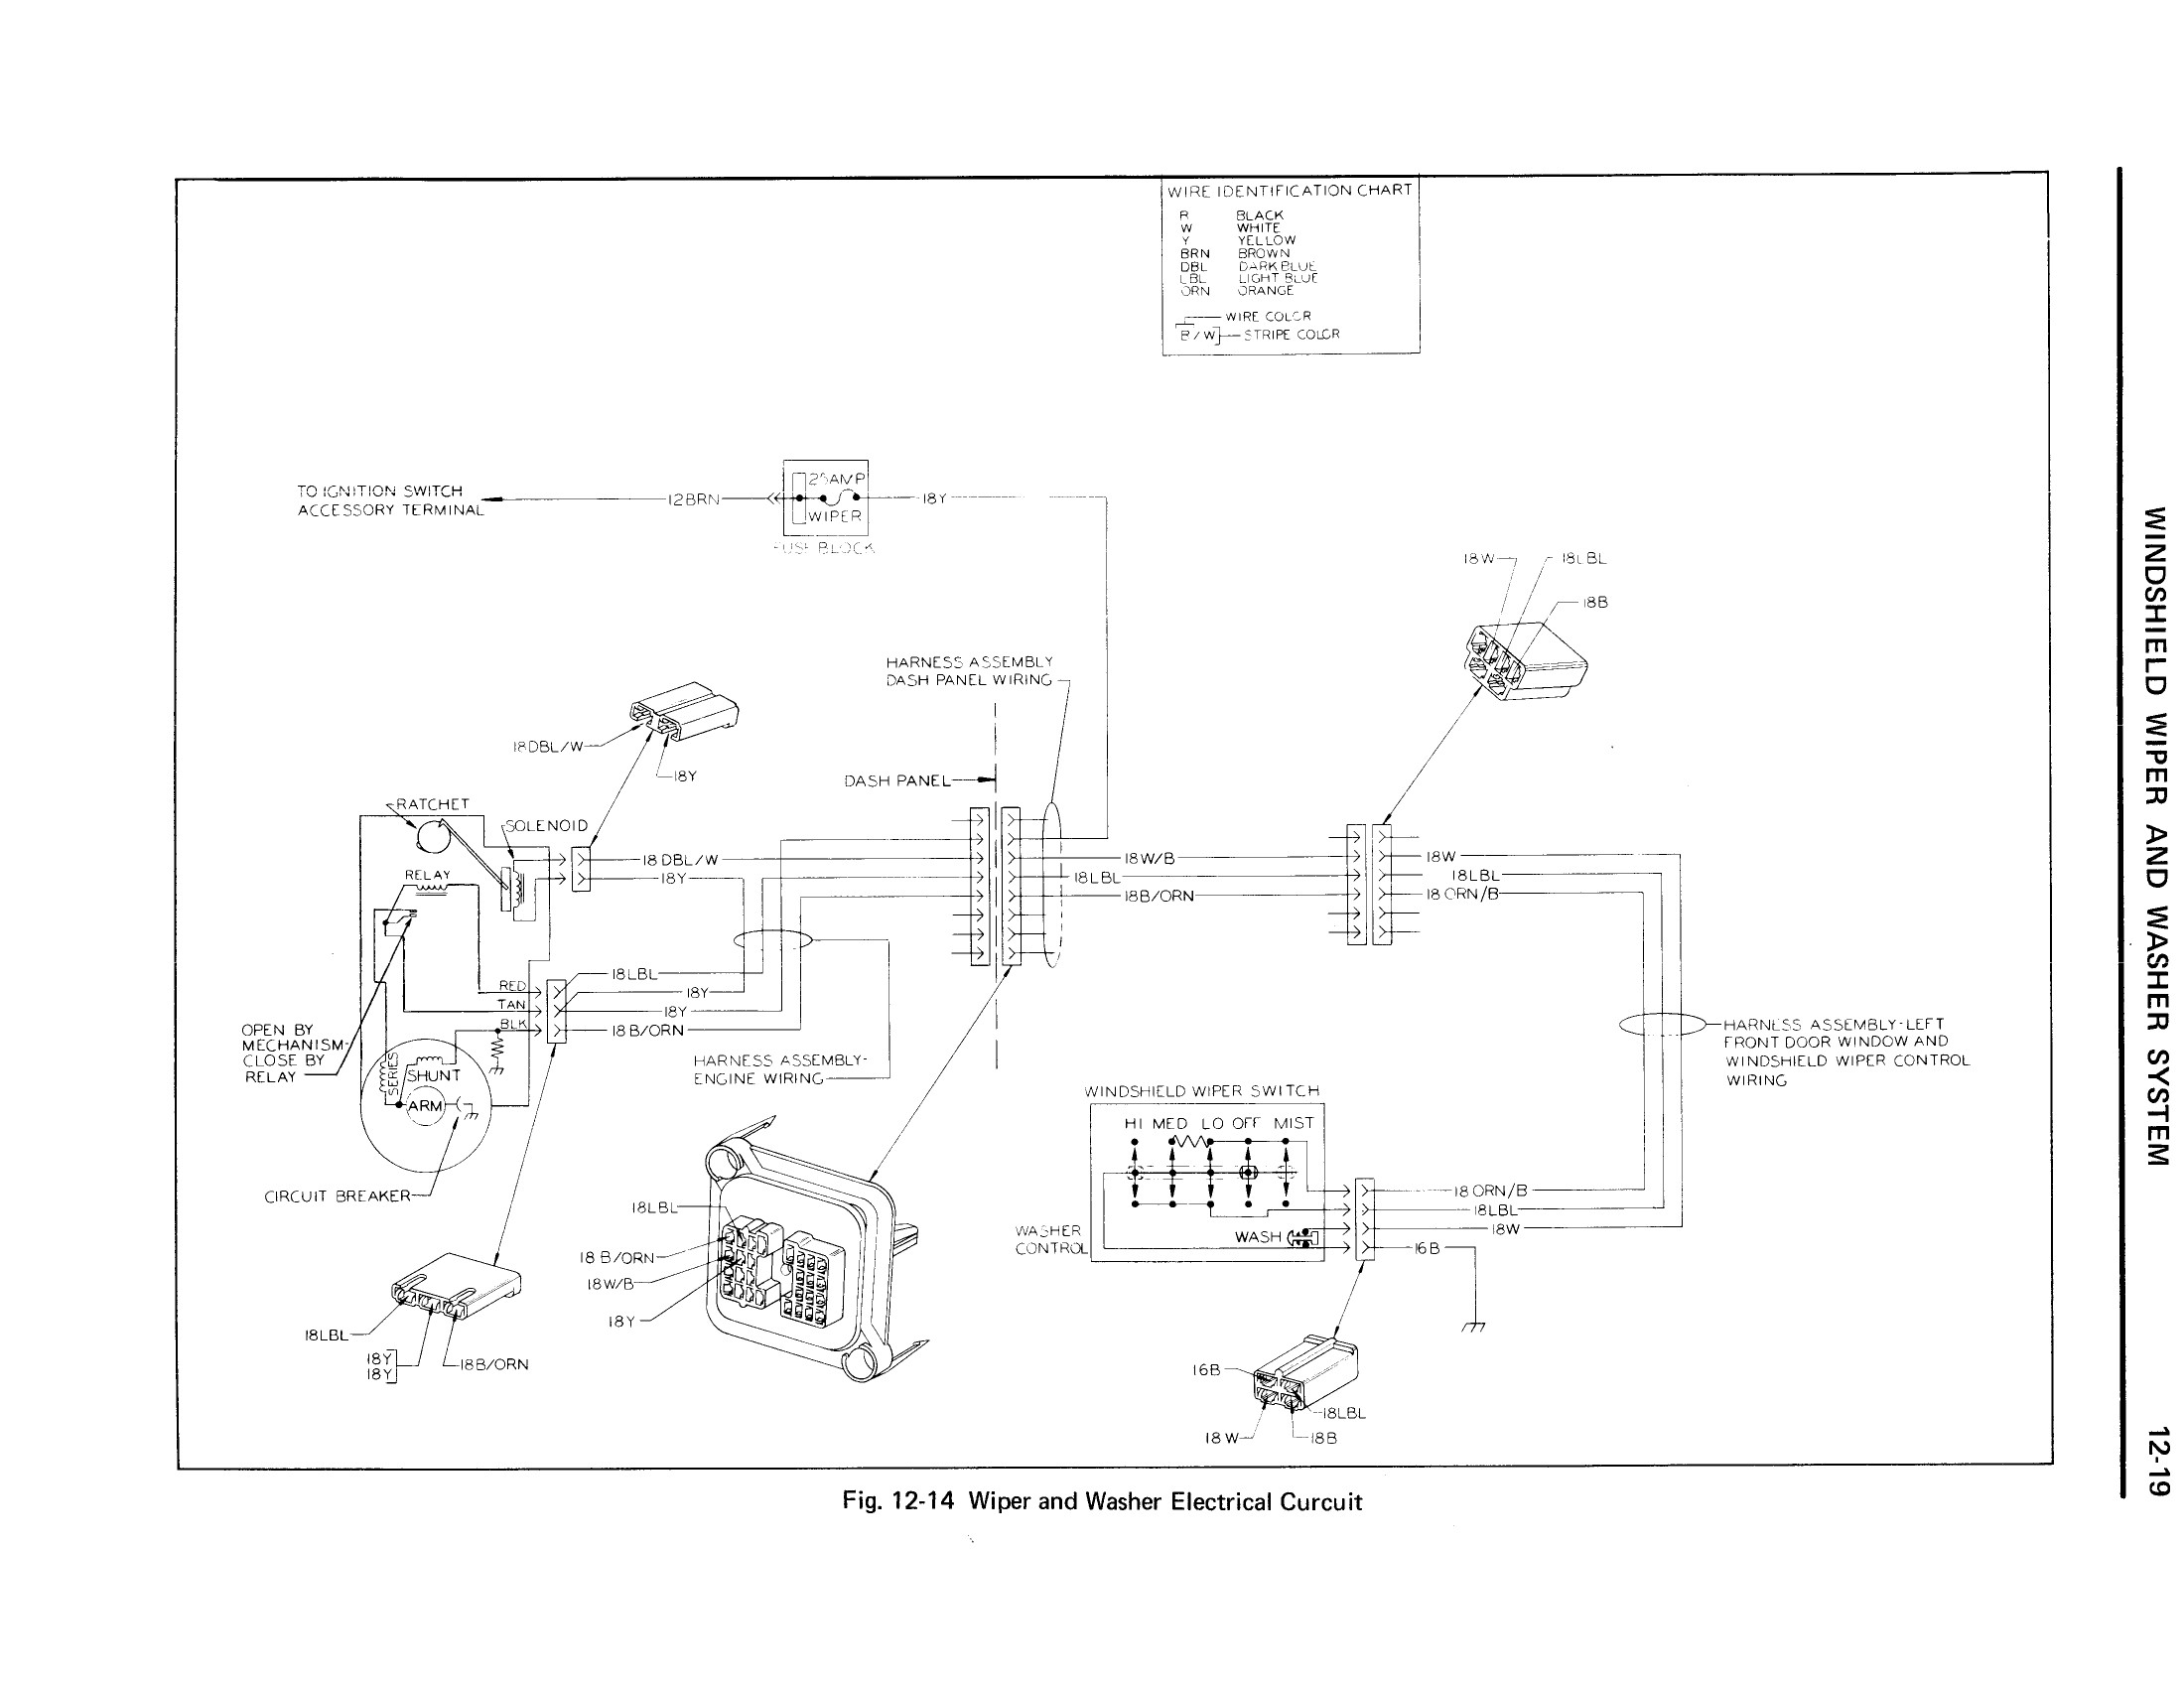 1971 Cadillac Shop Manual- Chassis Electrical Page 19 of 74